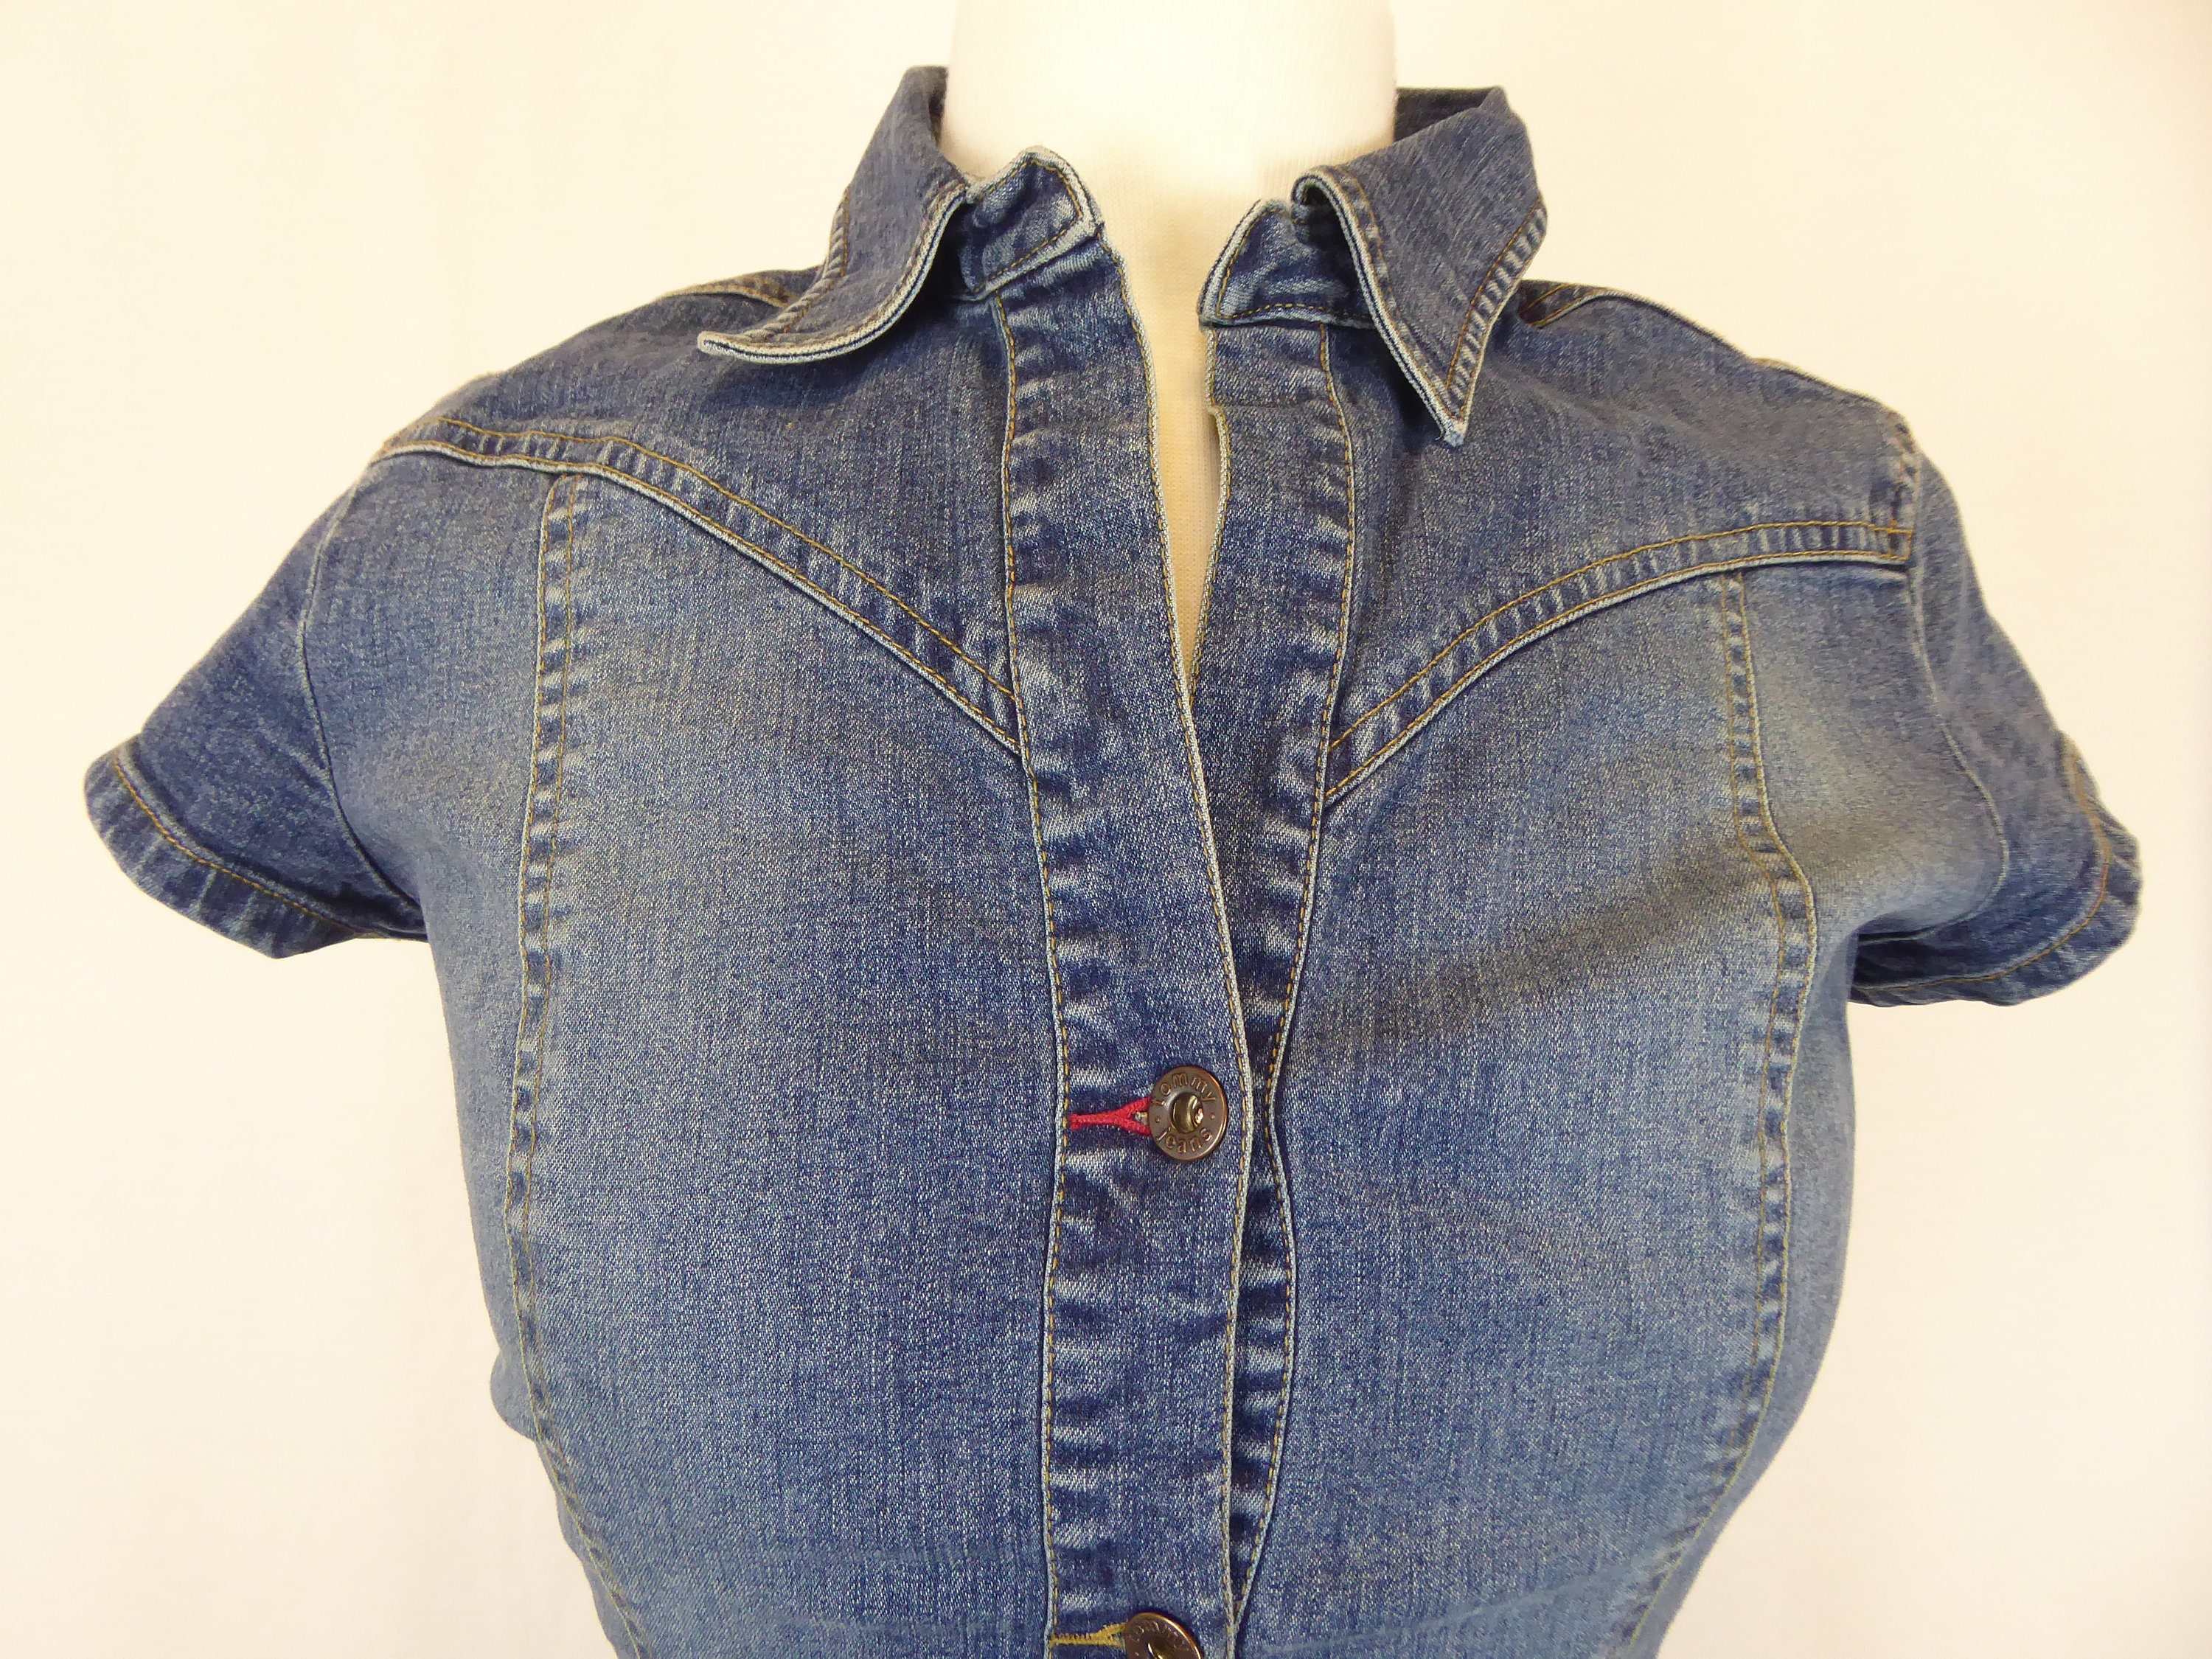 96e4560df Tommy Hilfiger Denim Dress, Women's Small, Tommy Jeans 90s Style Short  Sleeve Button Up Stretch Bodycon Dress